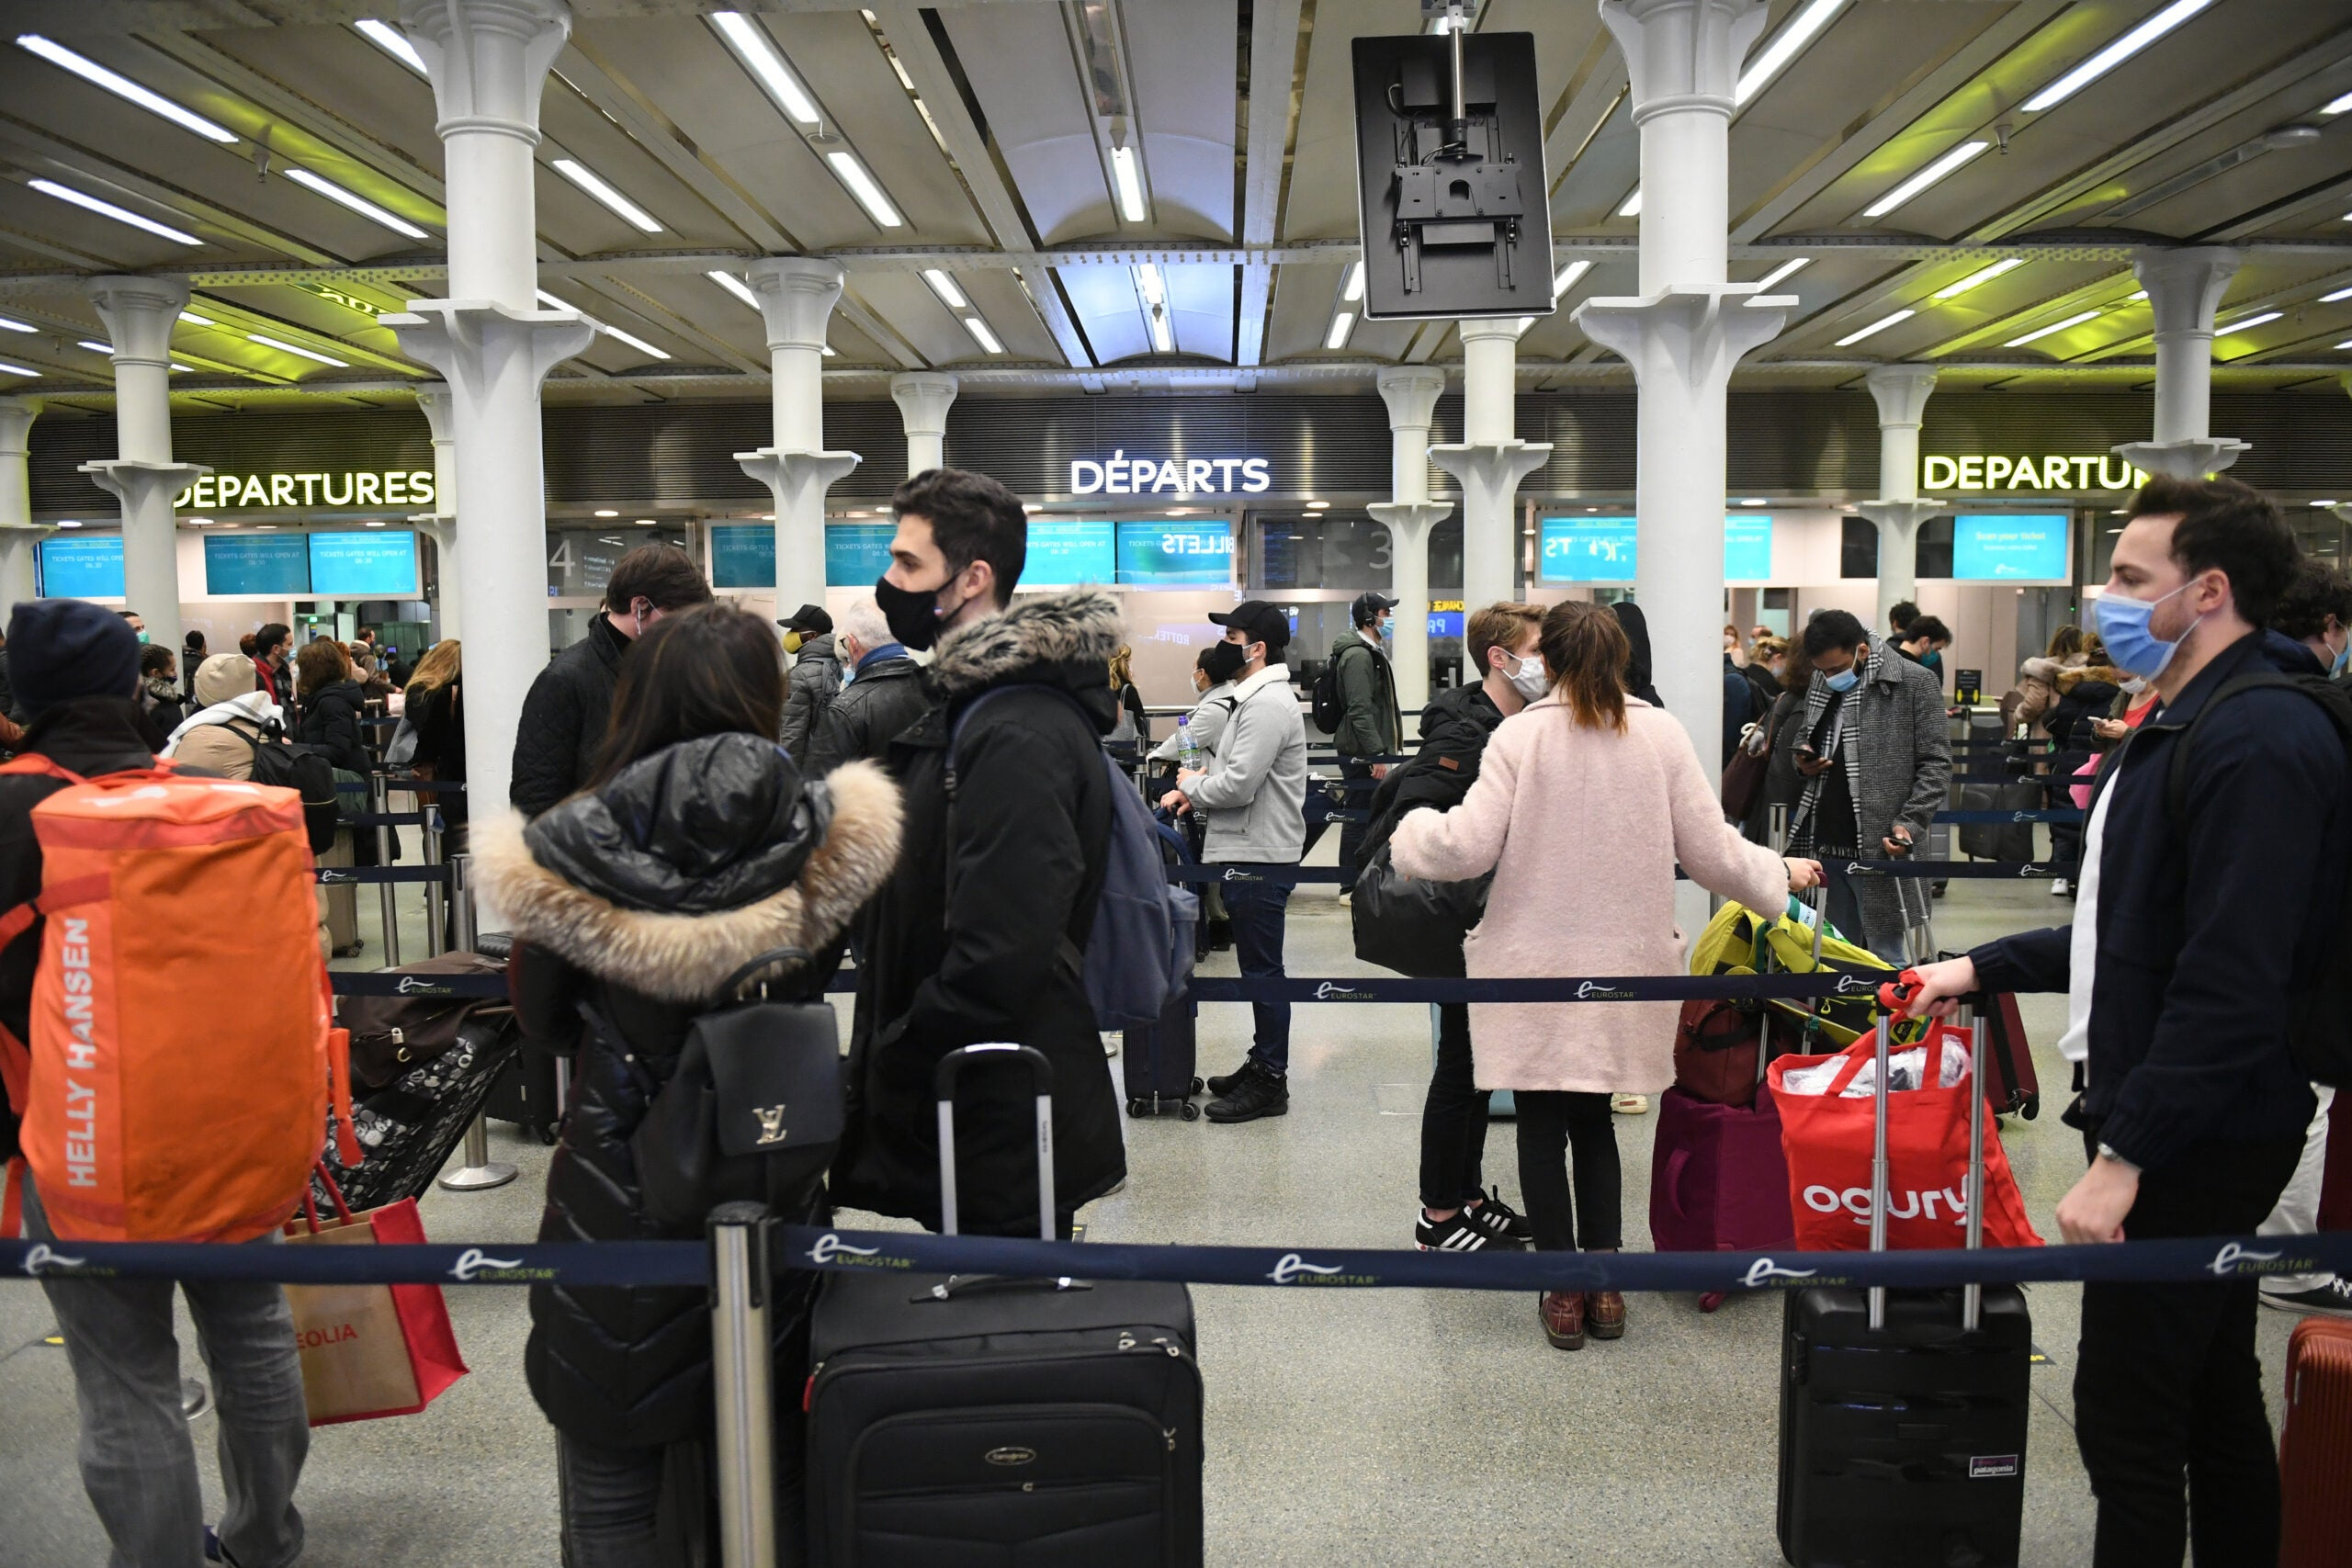 Chaos in the UK following new travel bans and flight cancellations to slow spread of new coronavirus strain